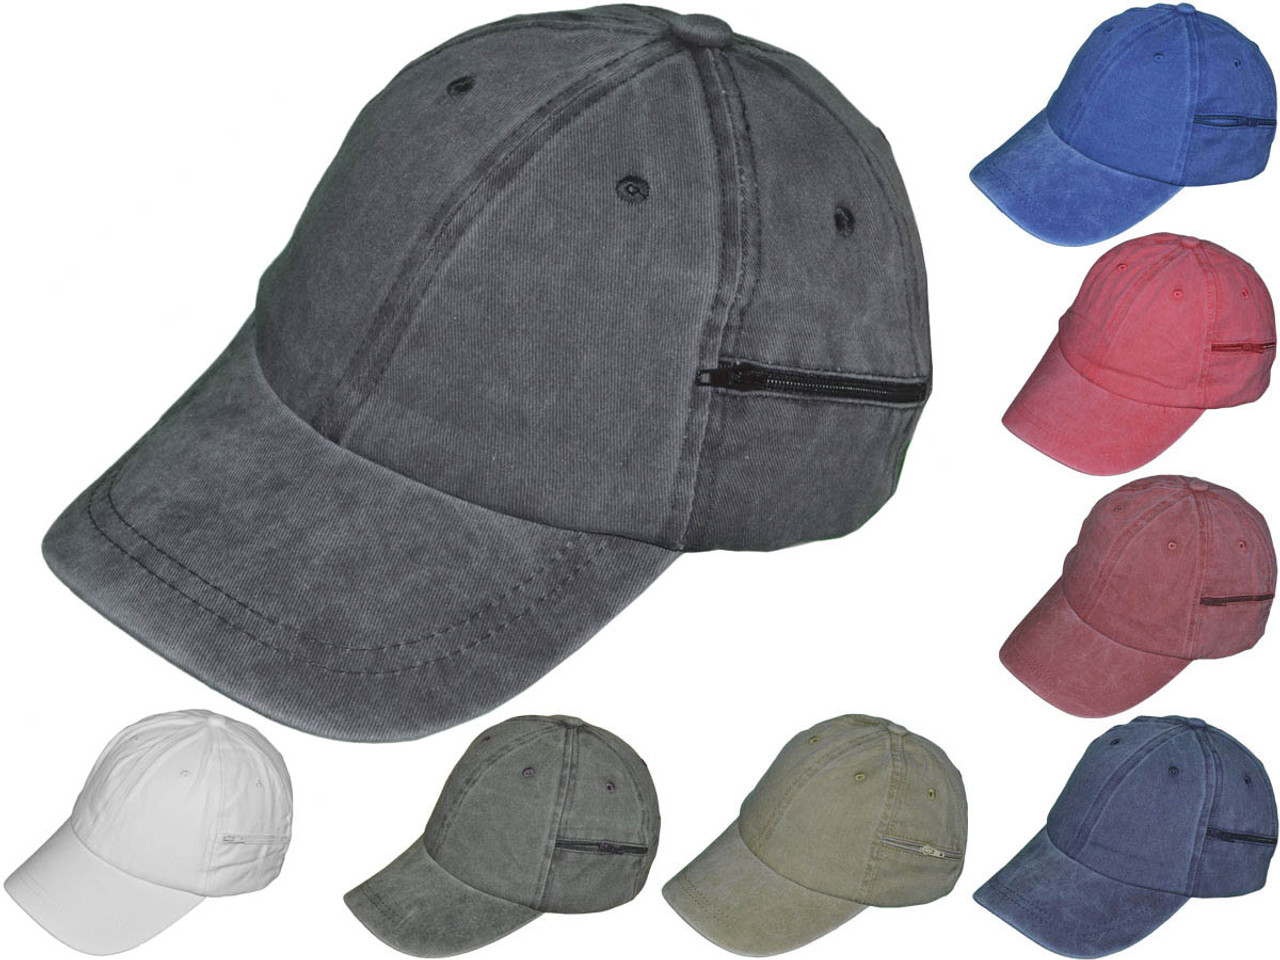 a0e79ad16e5455 Blank Dad Hats with Zipper Pocket - BK Caps Unisex Brushed Cotton Polo  Unstructured Low Profile Baseball Hats With Pre Curved Visor (8 Colors  available) - ...